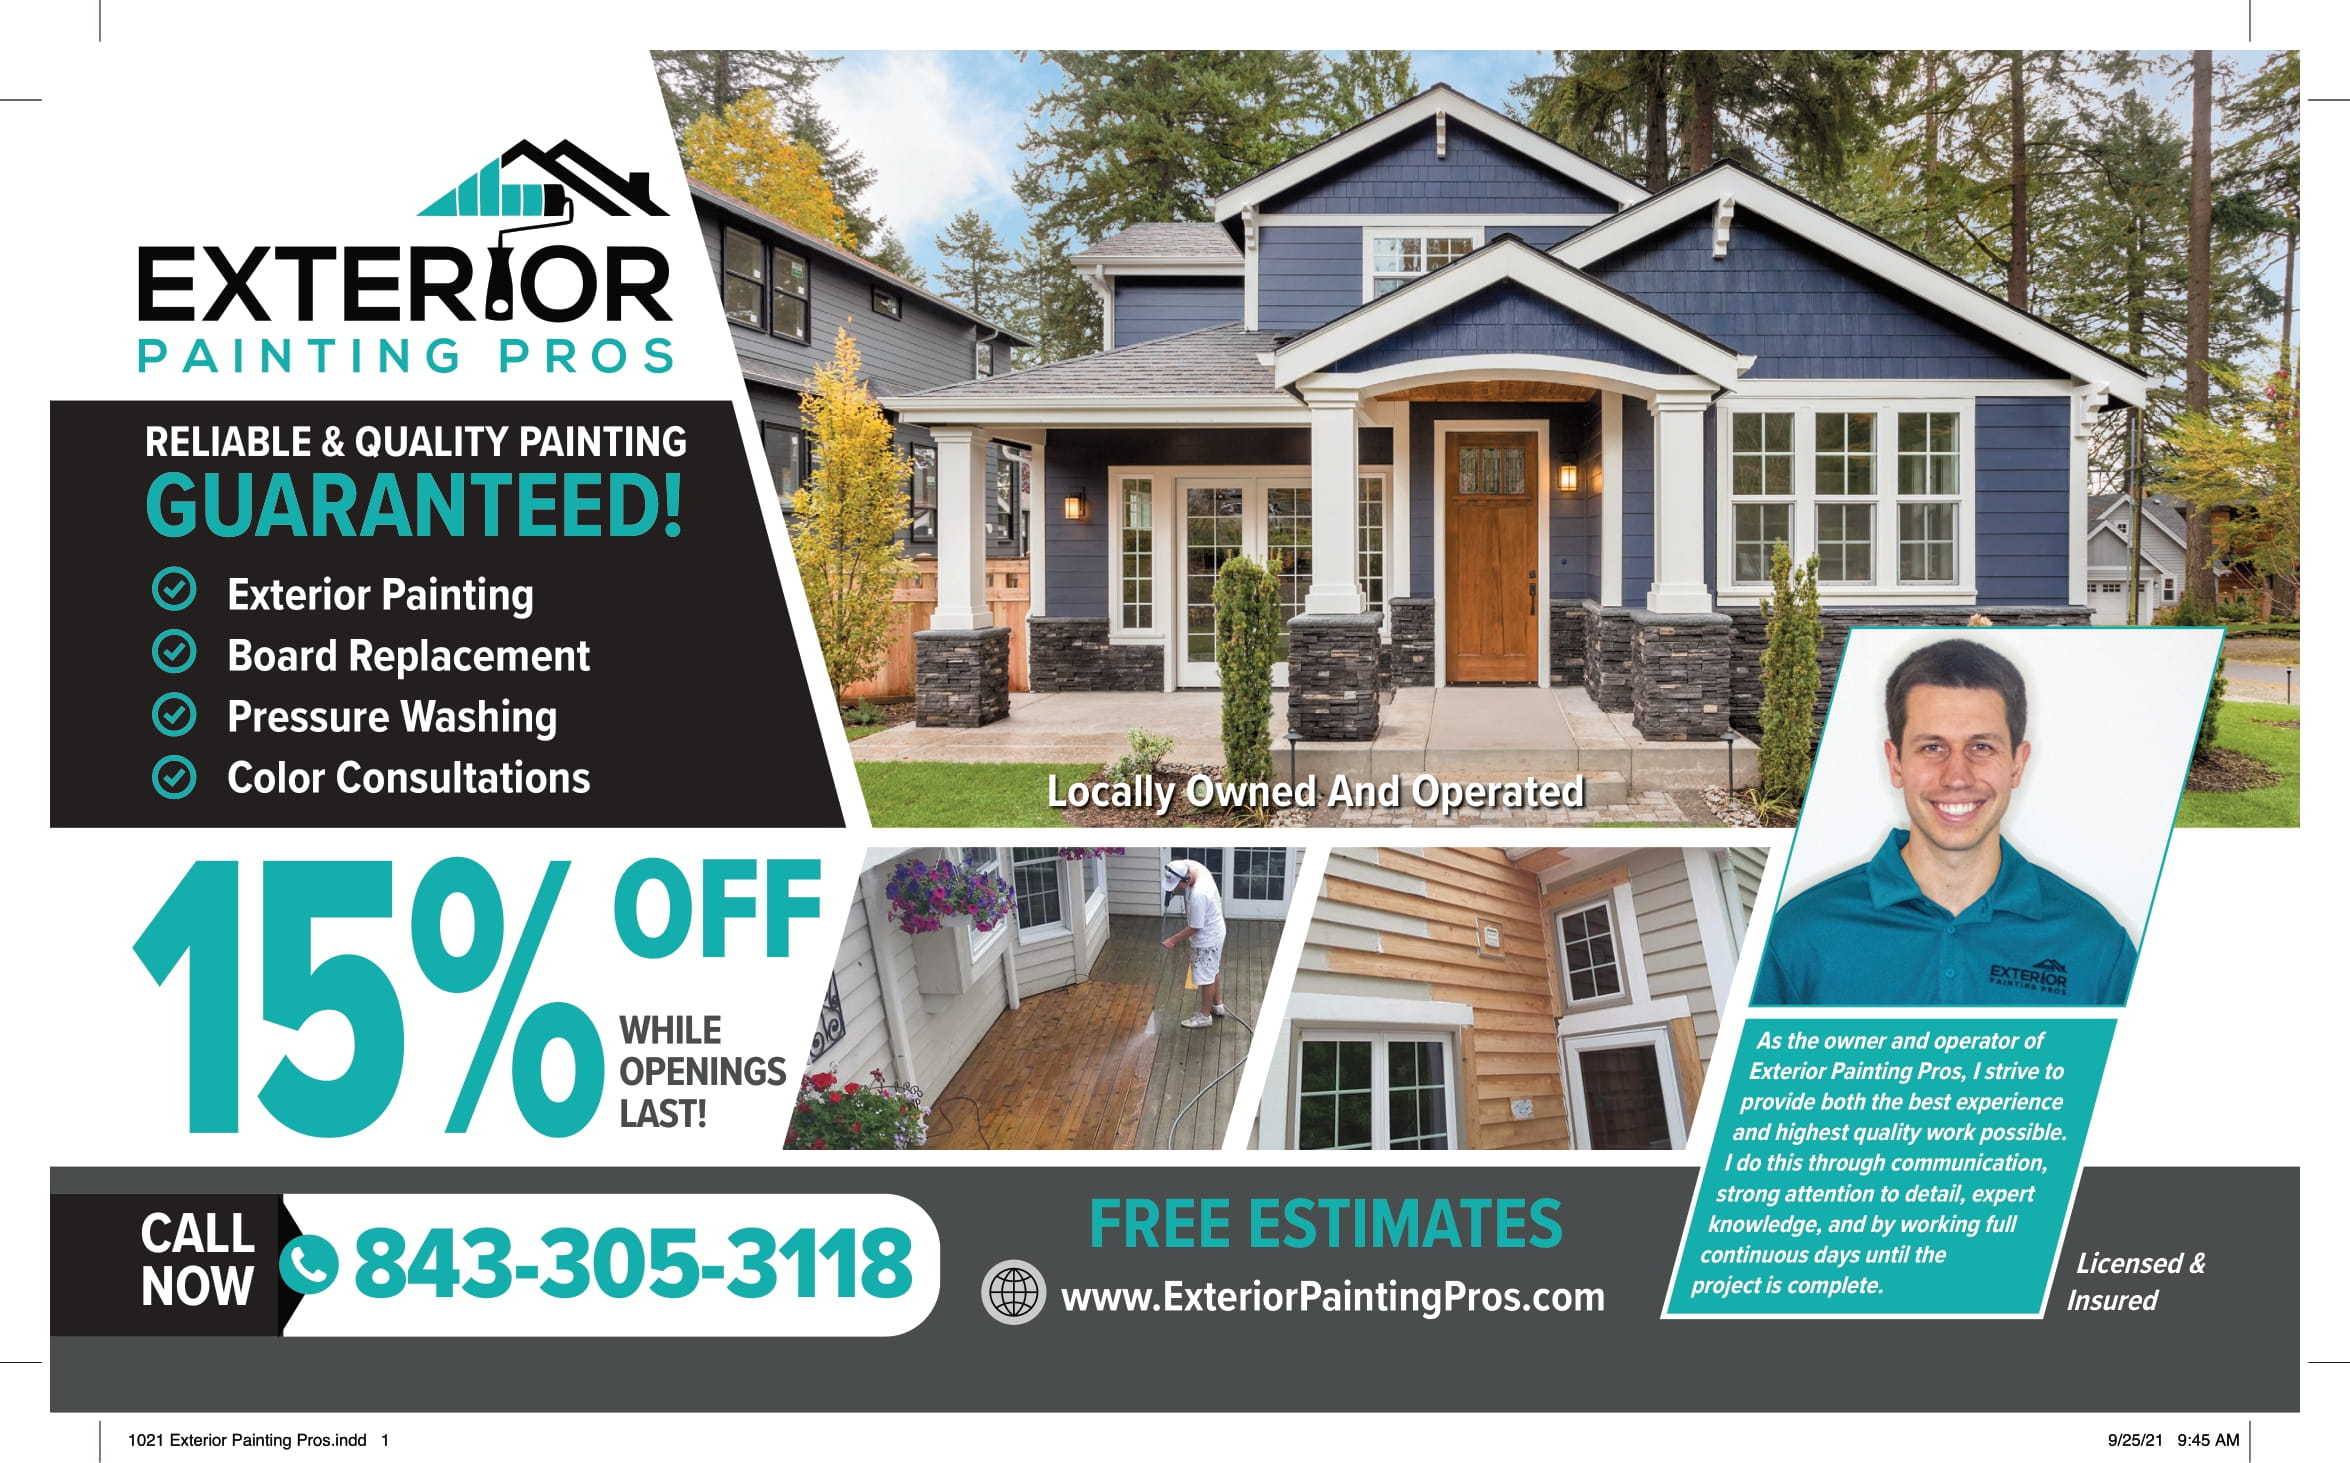 1021 Exterior Painting Pros 1